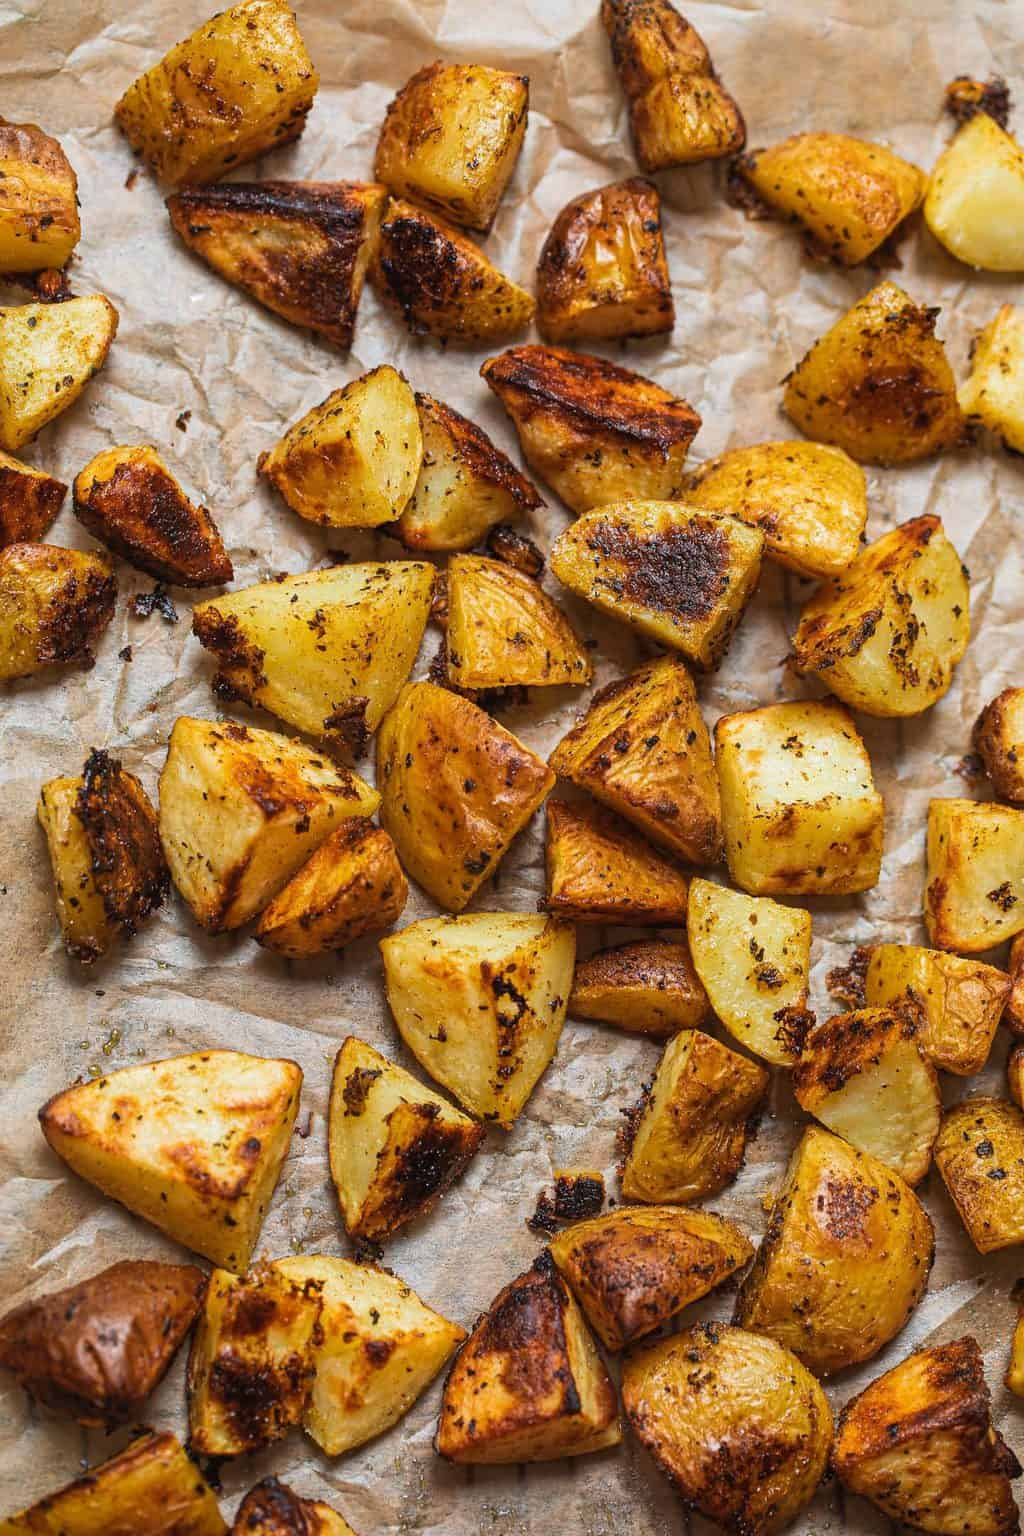 Roasted lemon potatoes on a baking tray